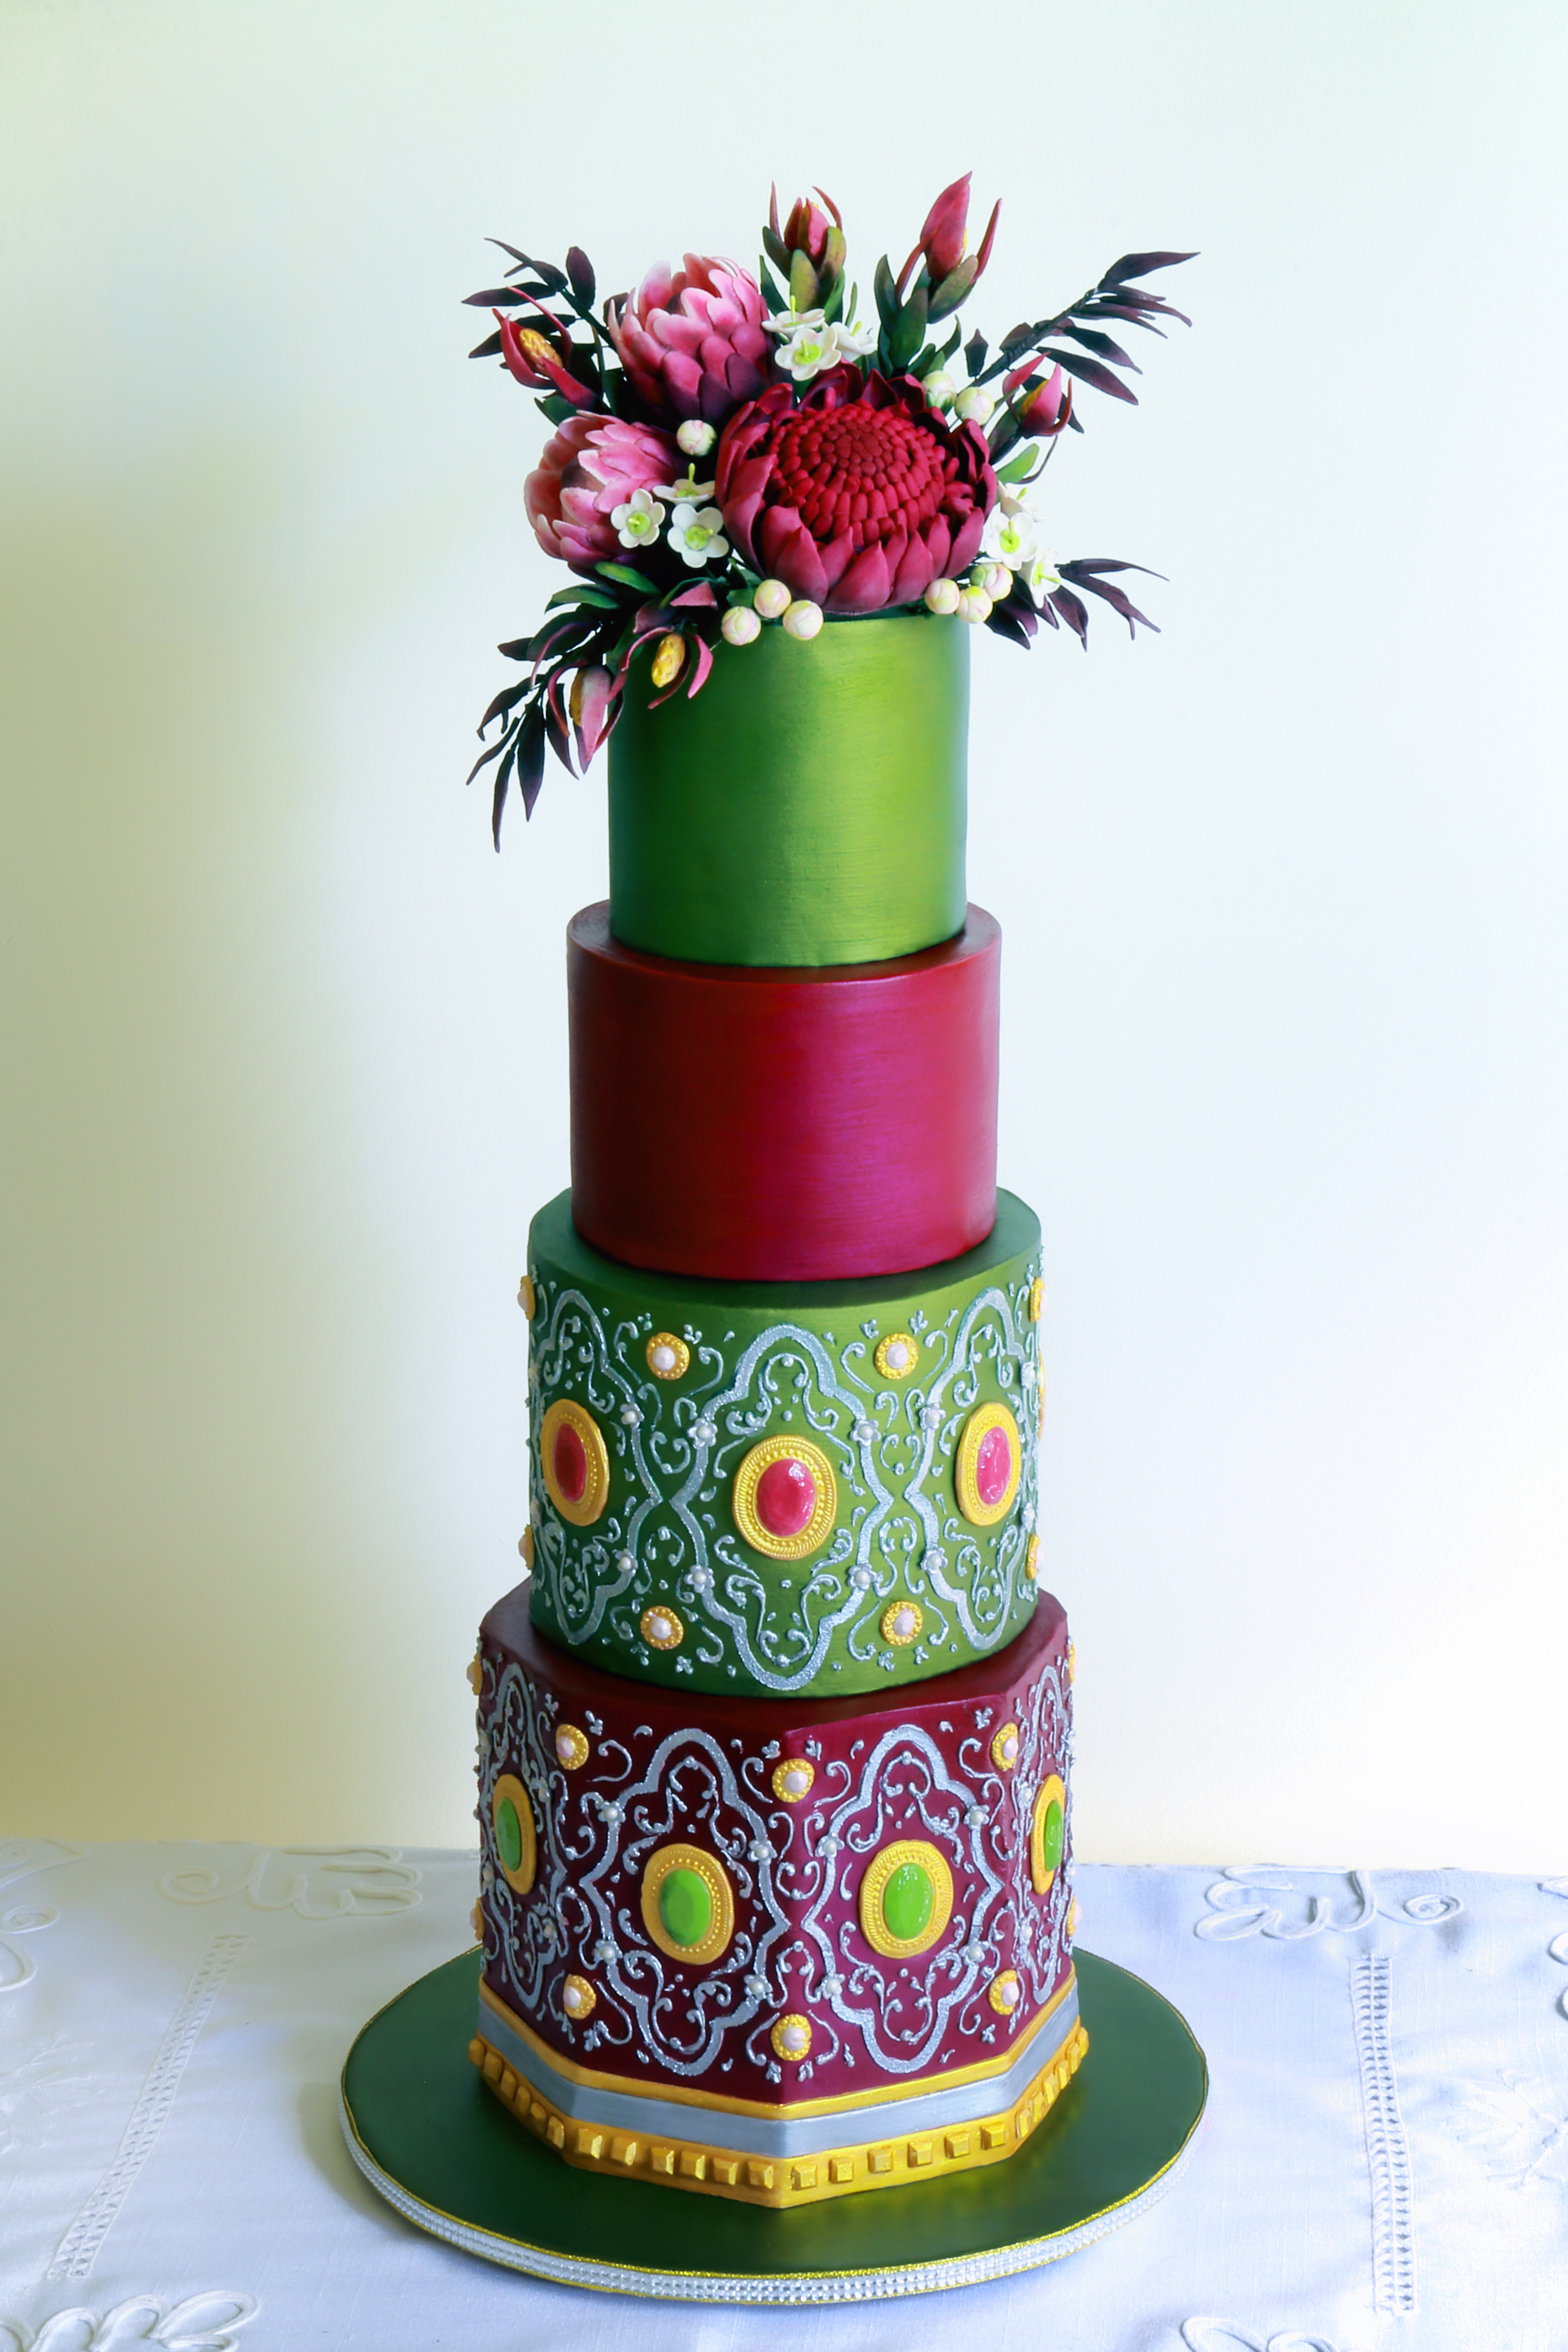 Green and pink wedding cake